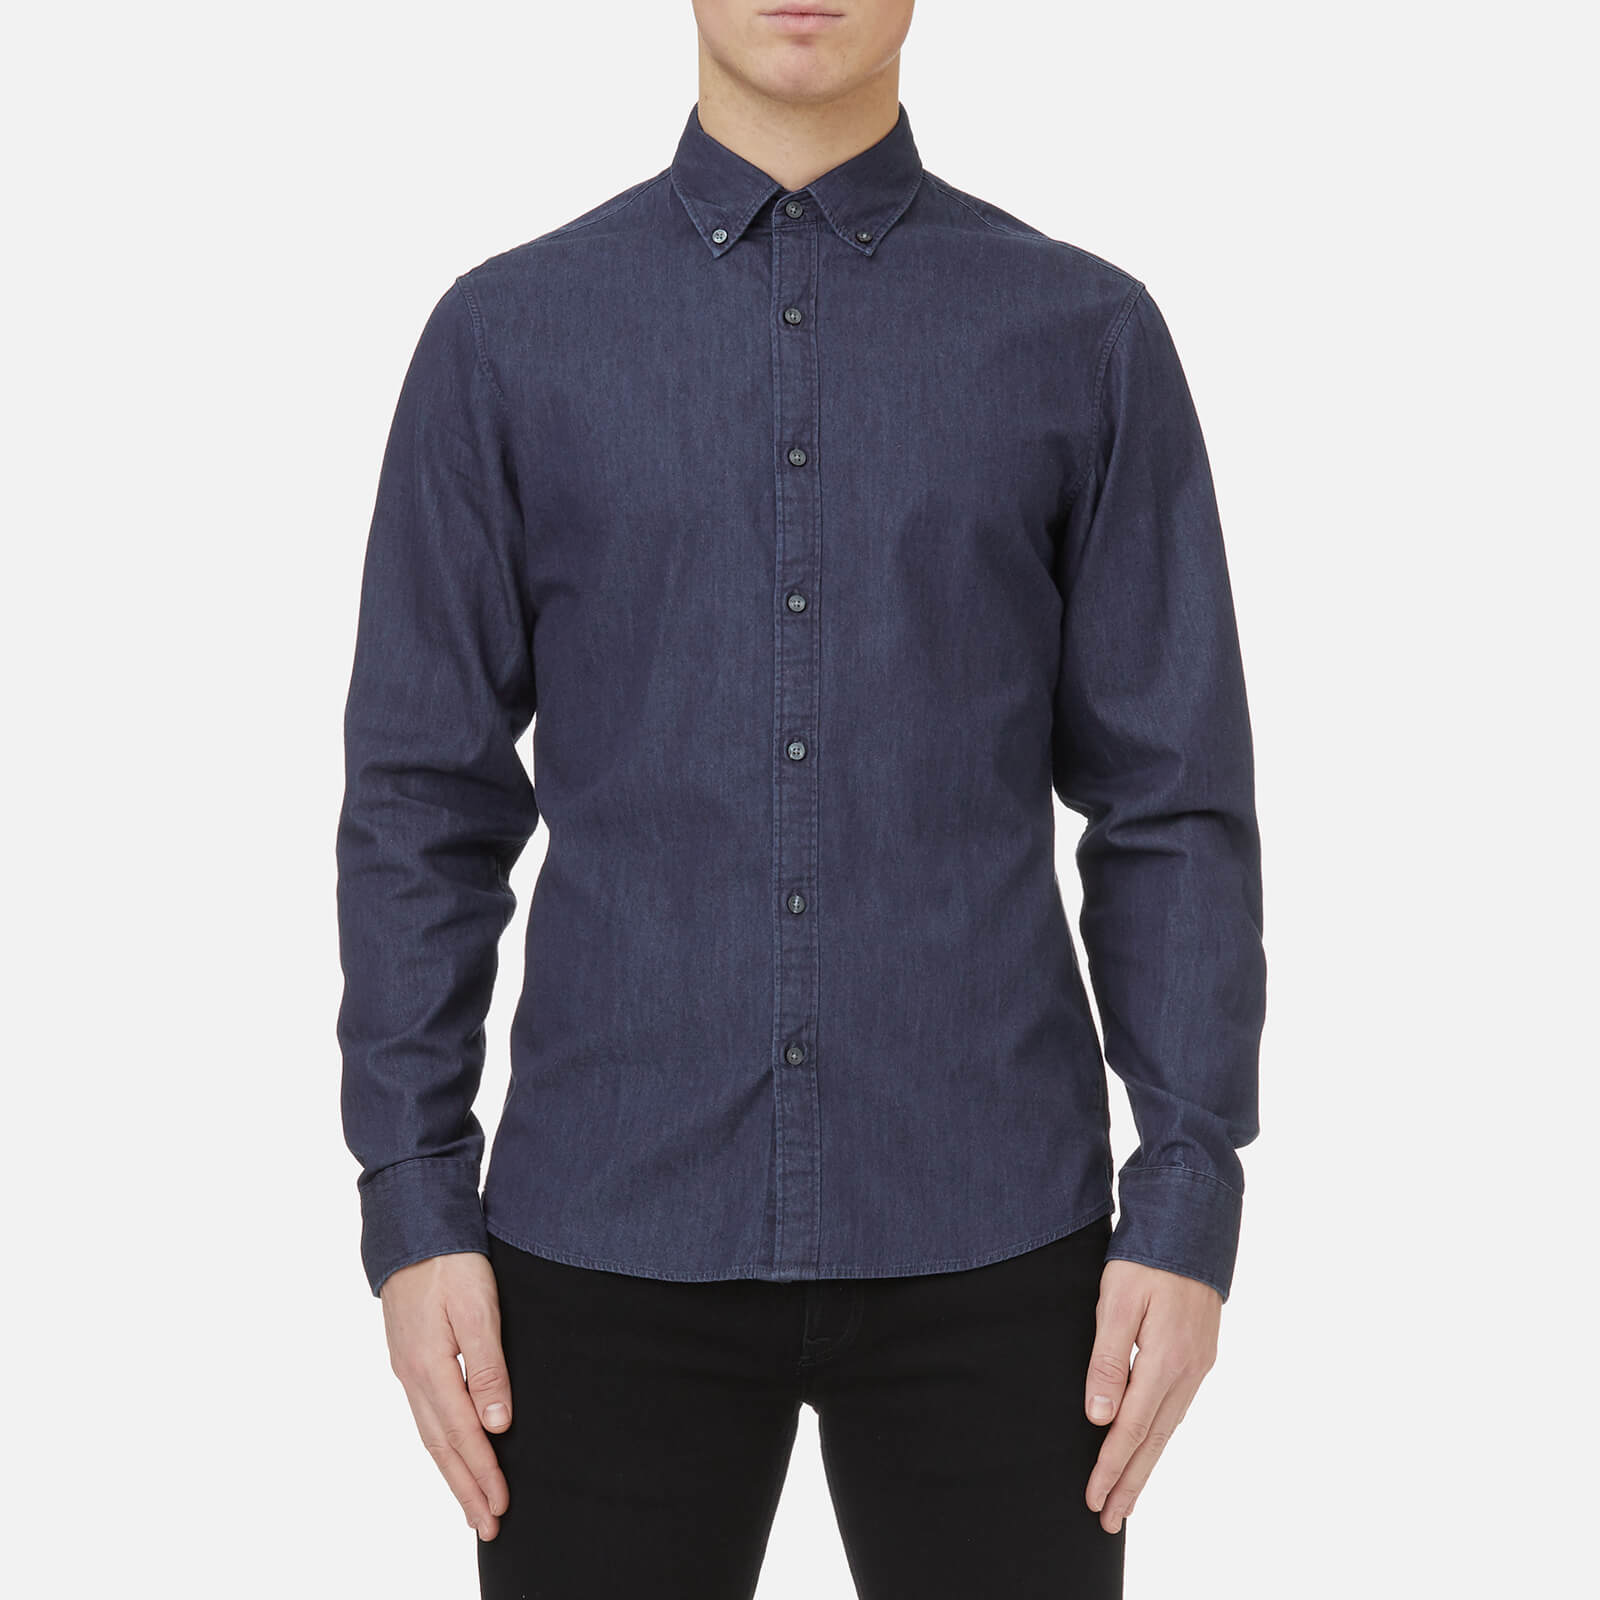 413248253f Michael Kors Men s Slim Fit Clean Dark Washed Denim Shirt - Dark Wash -  Free UK Delivery over £50